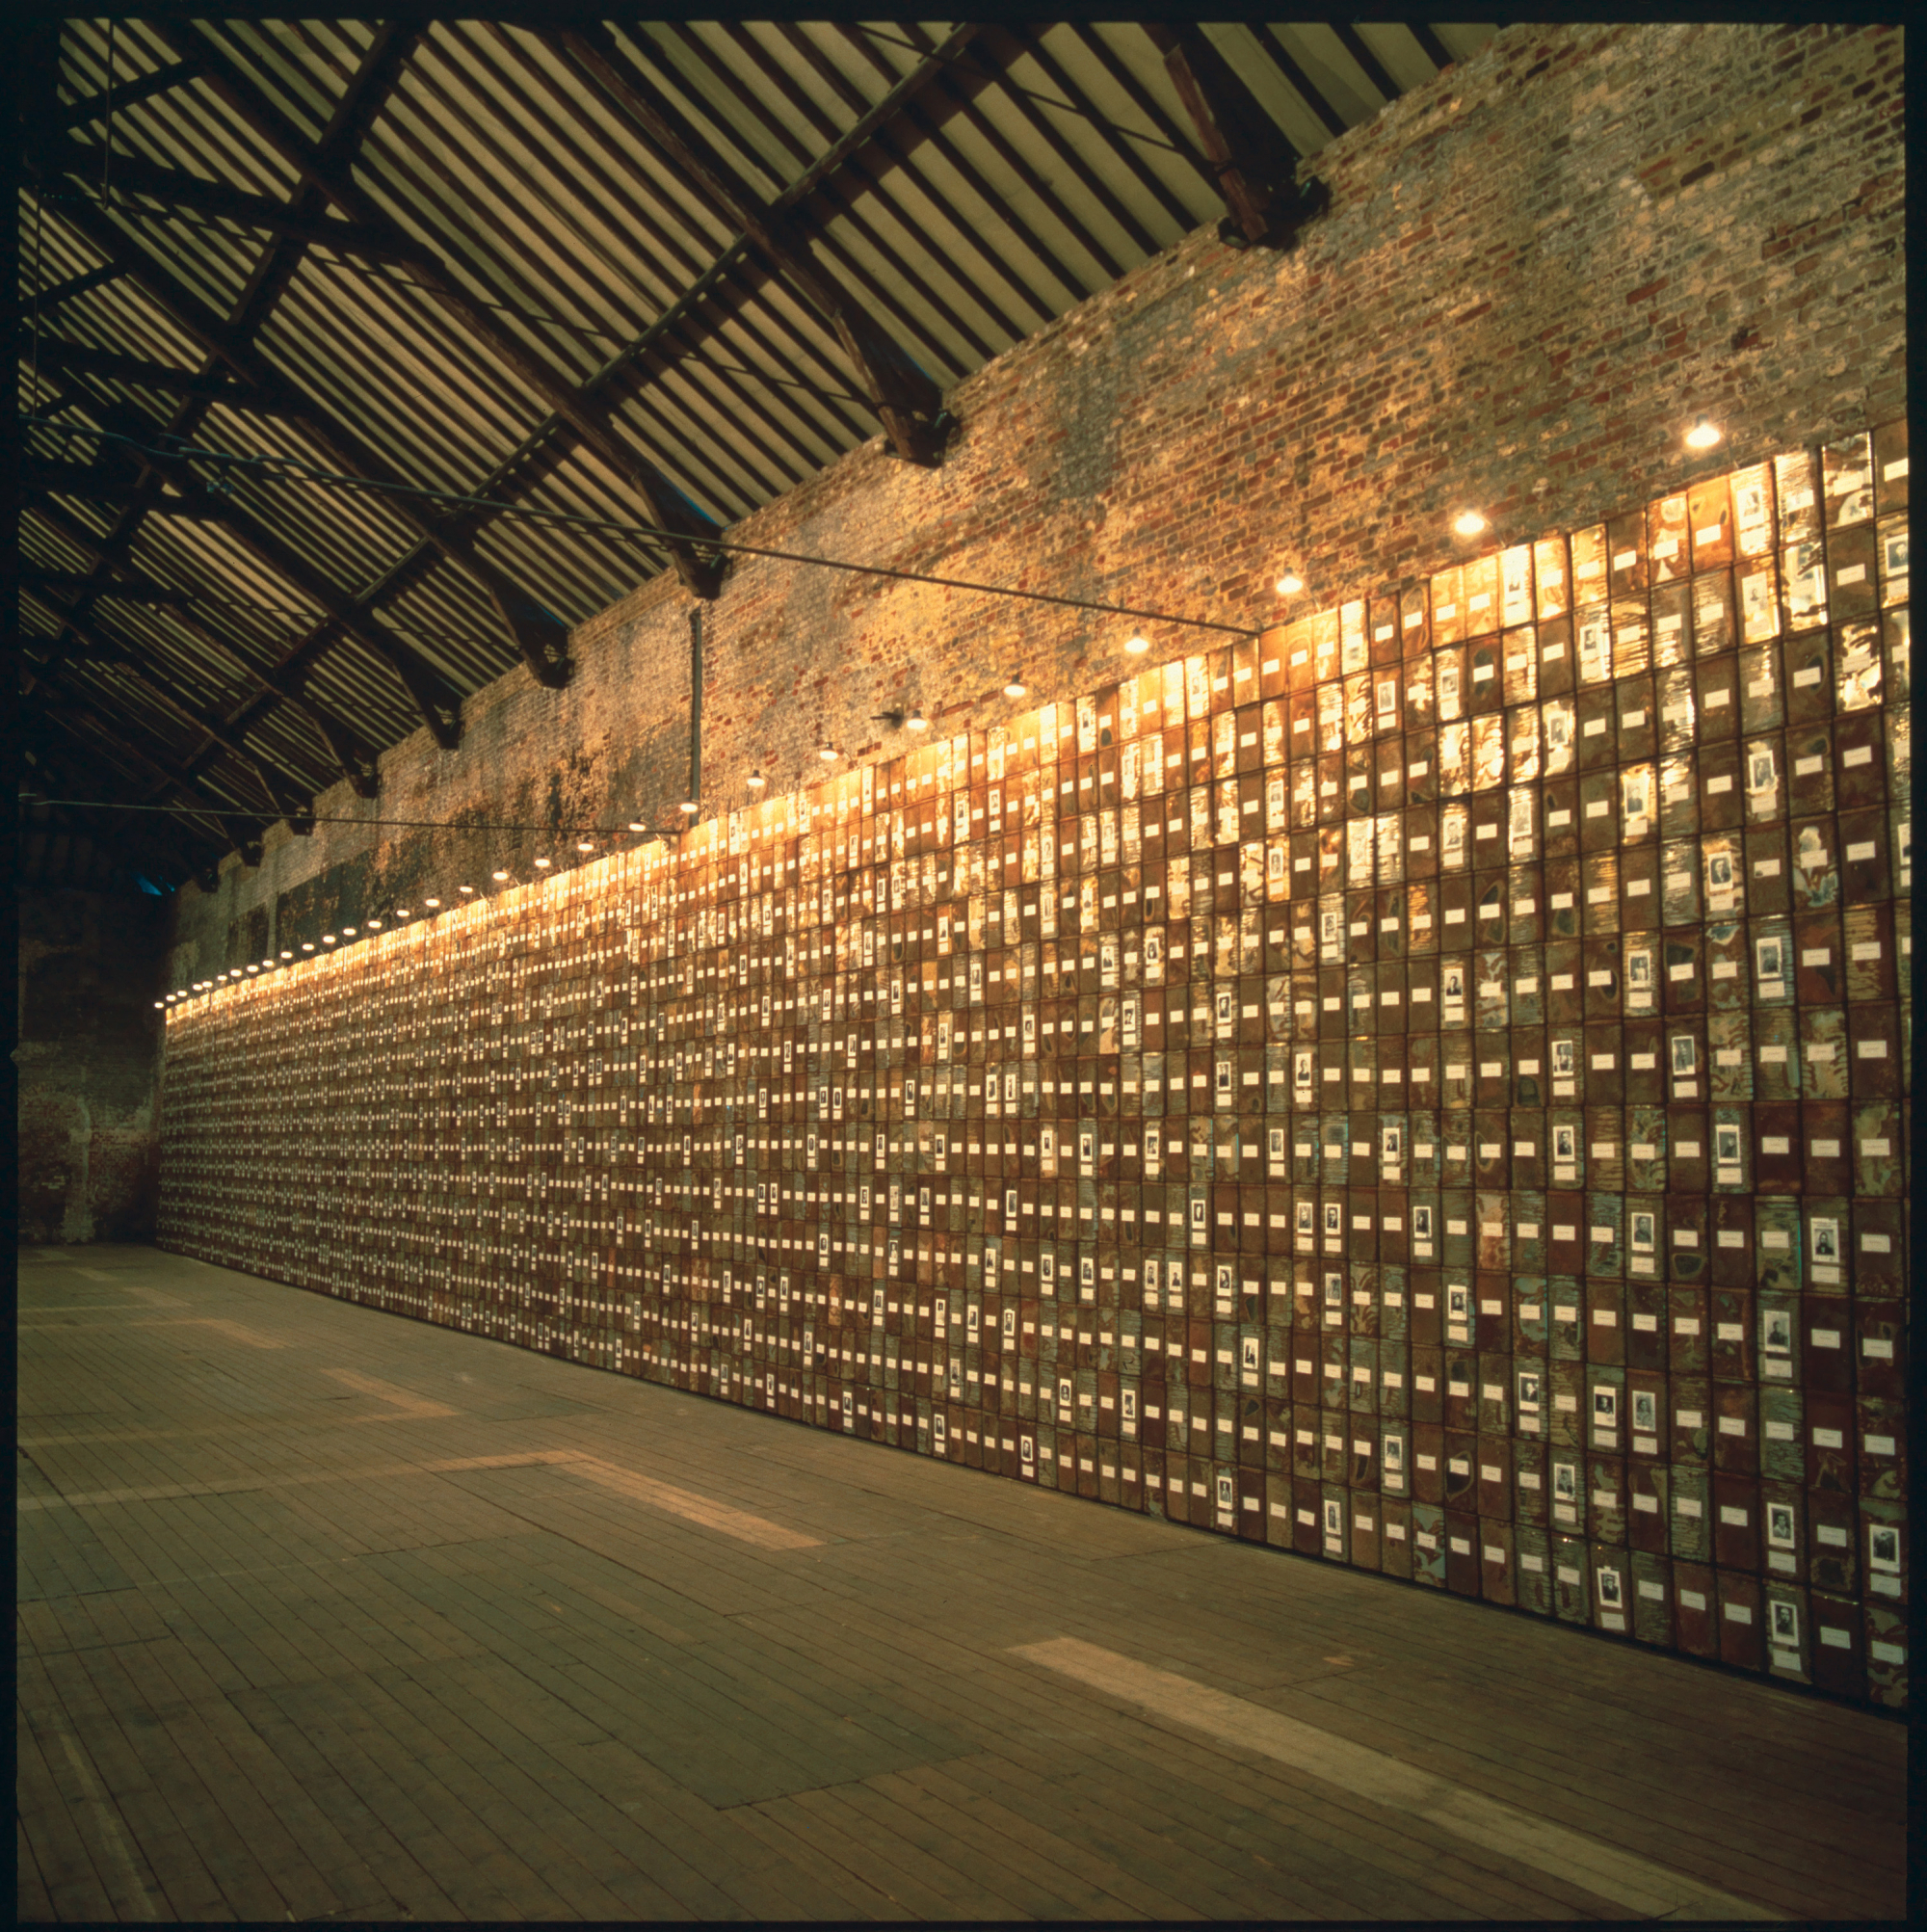 MACS - Œuvres de la collection - Christian Boltanski - Les Registres du Grand-Hornu